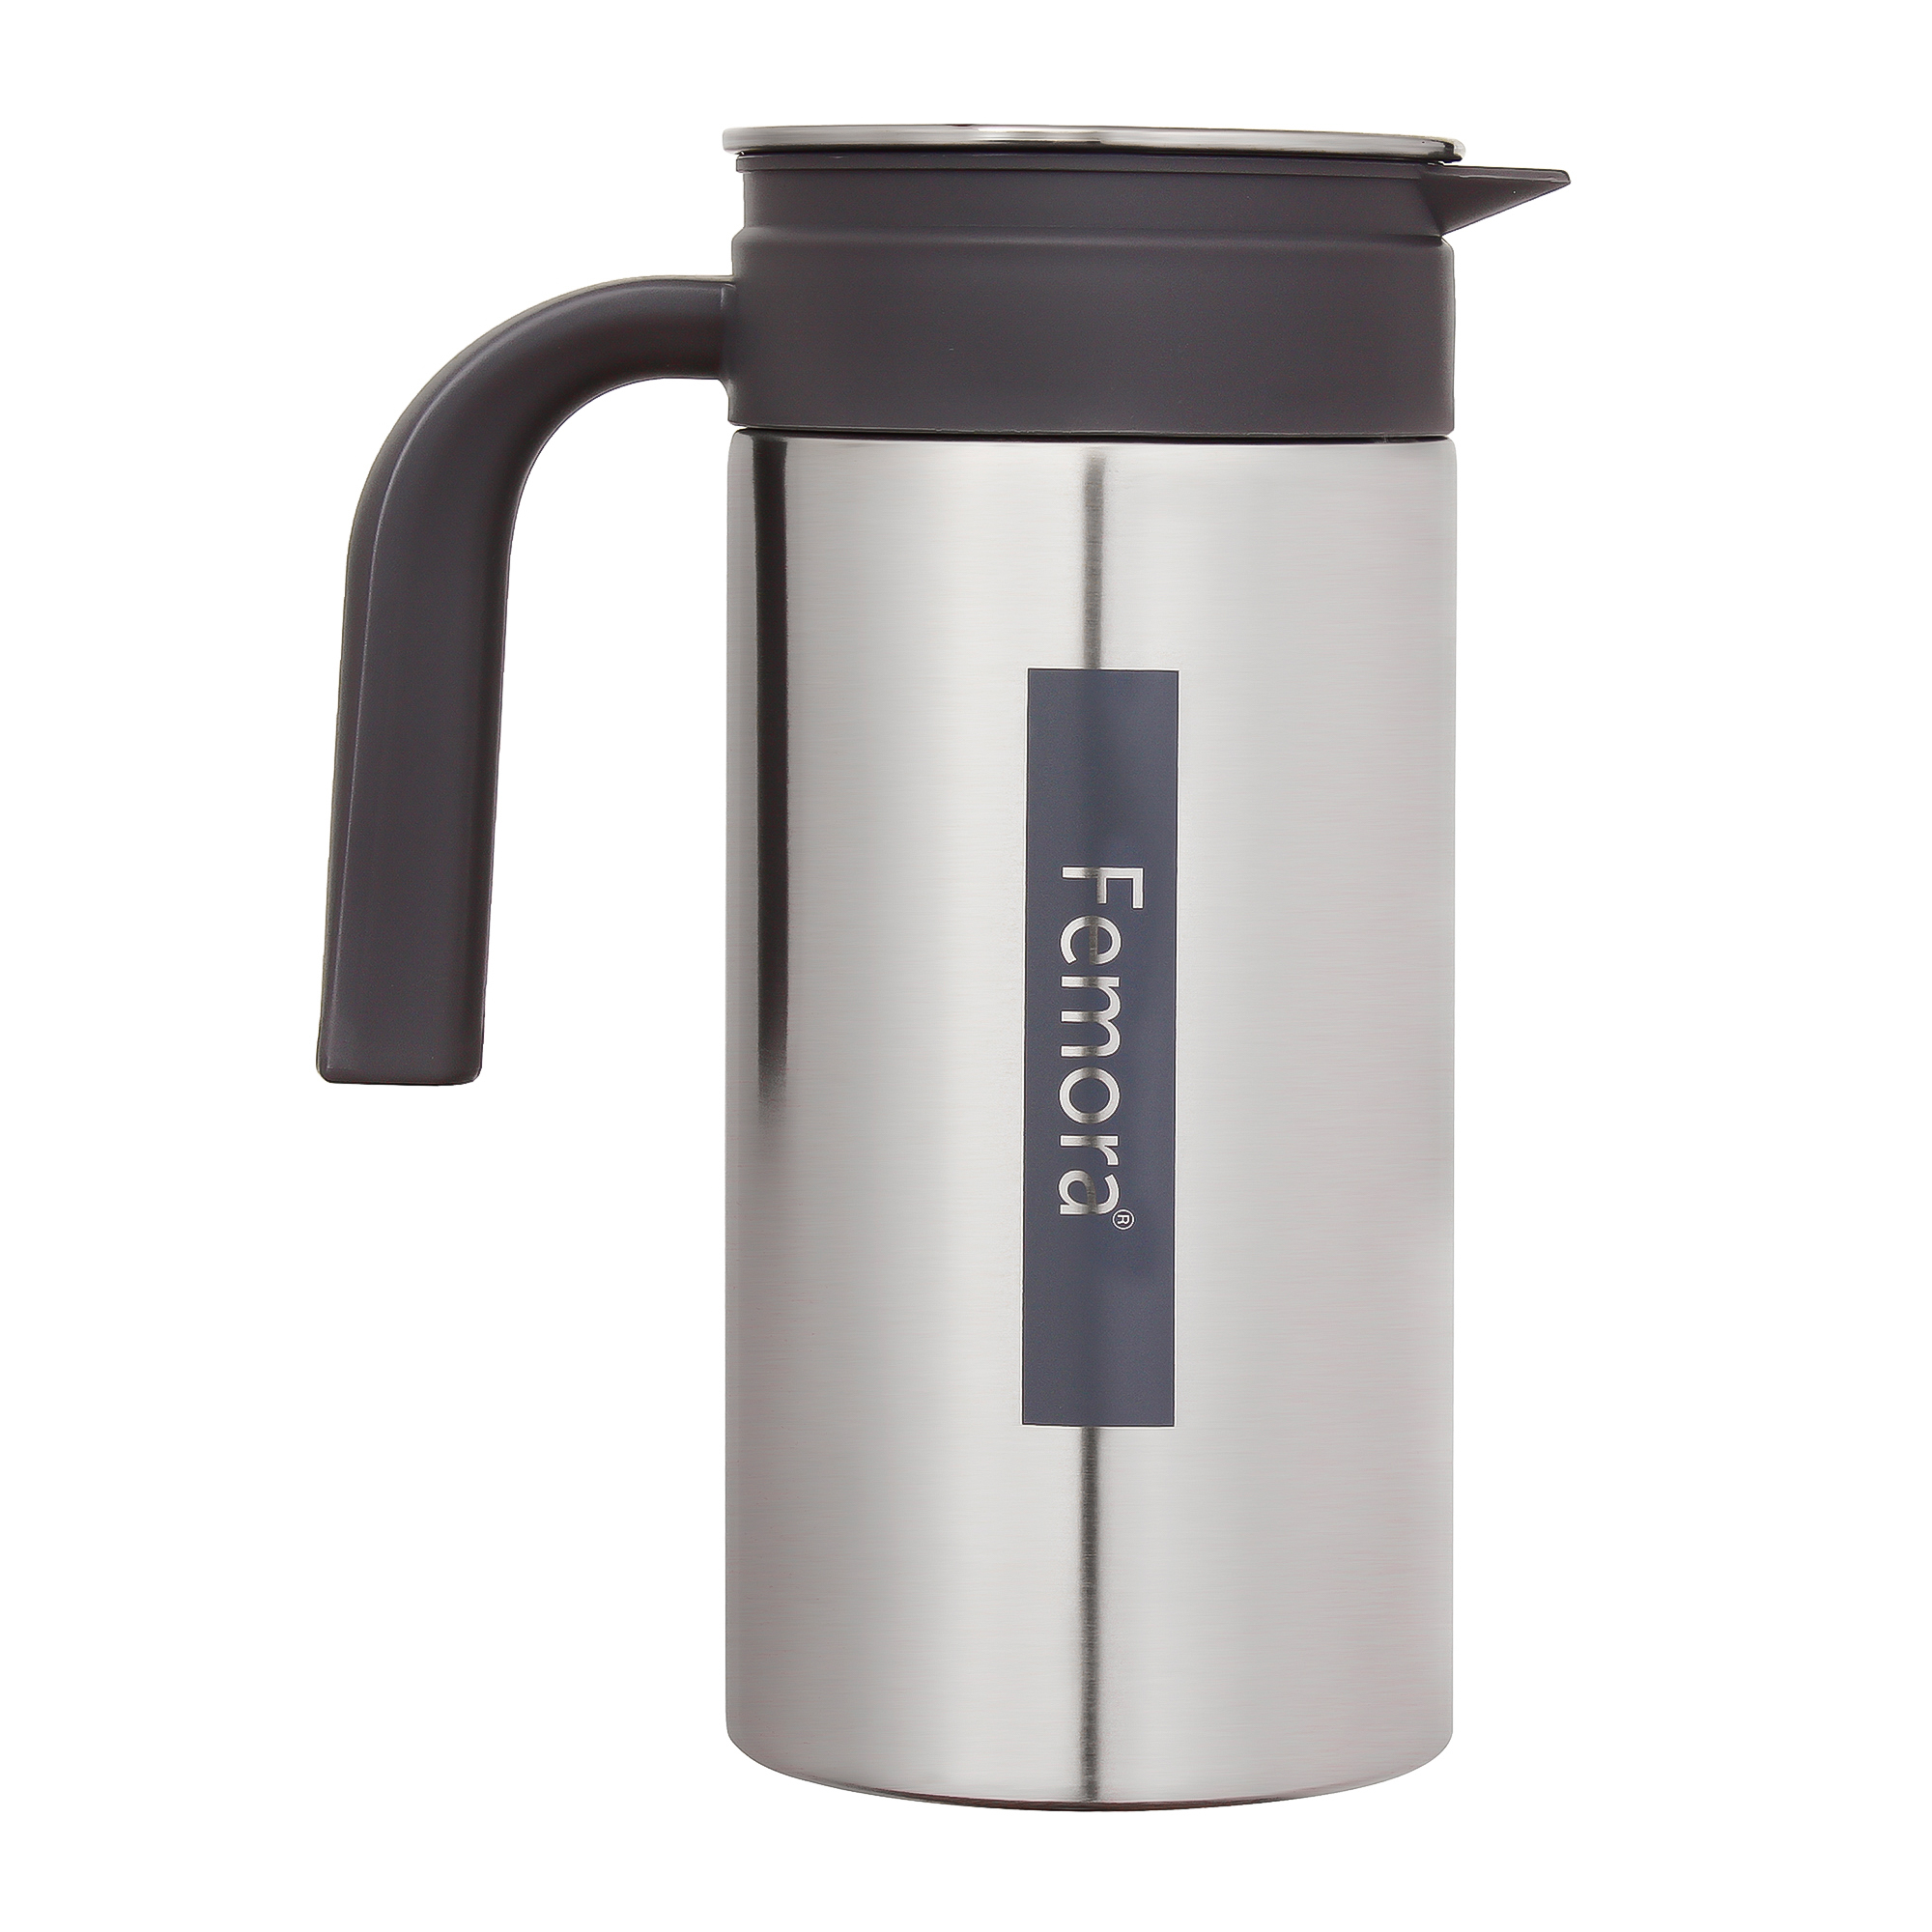 Stainless Steel Grand Jug with Handle - 1.4 L, Silver Black